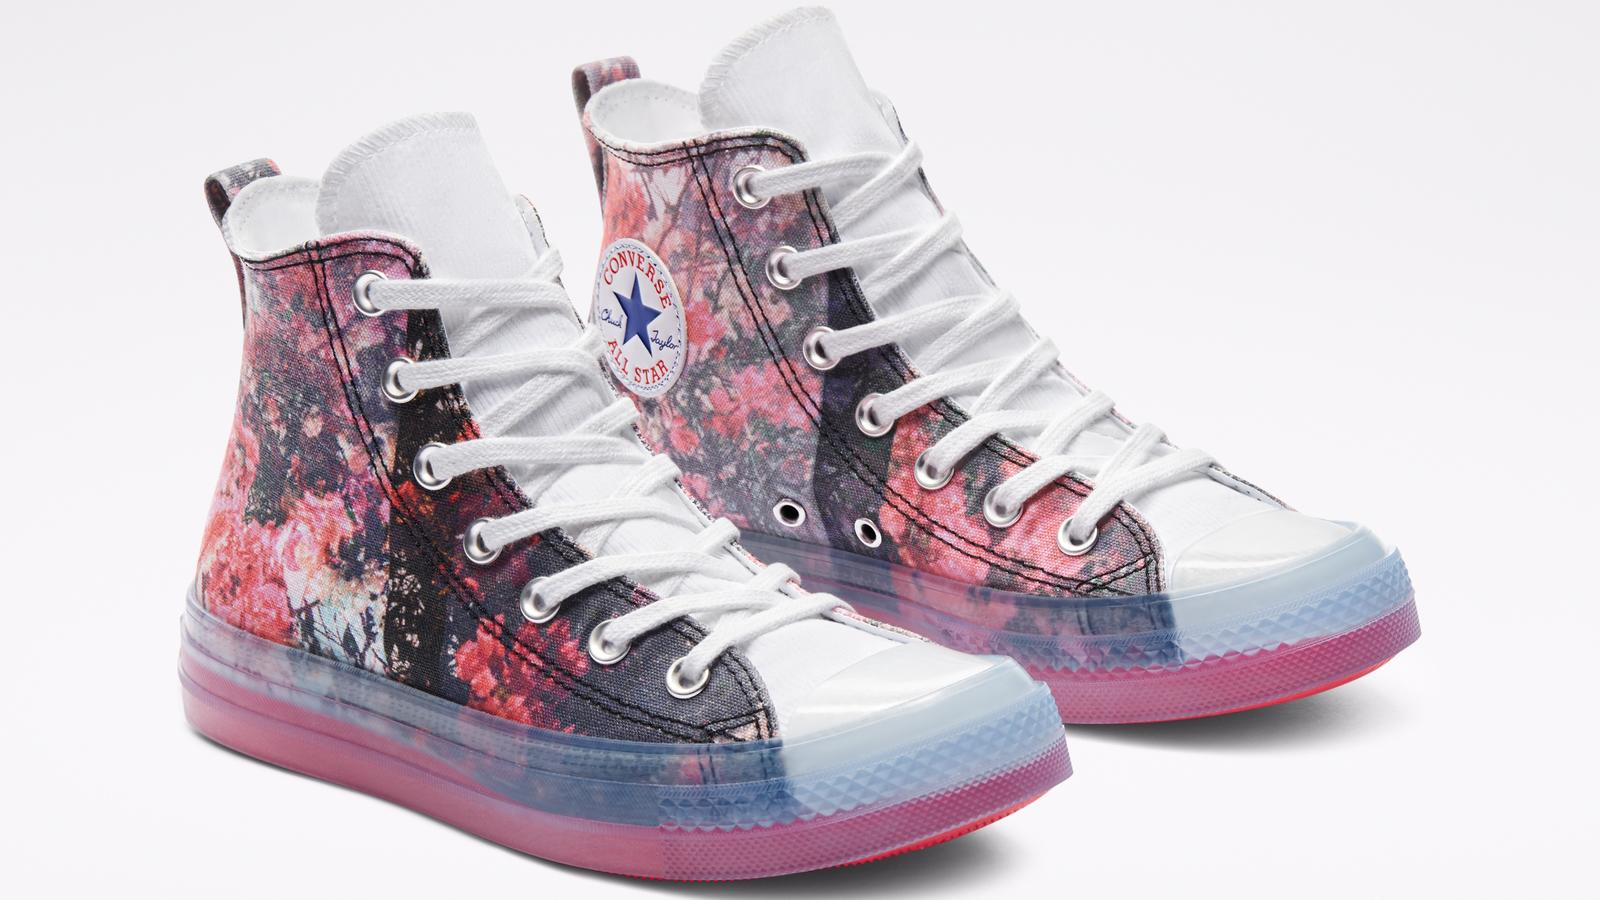 converse-x-shaniqwa-jarvis-chuck-taylor-all-star-cx-and-apparel